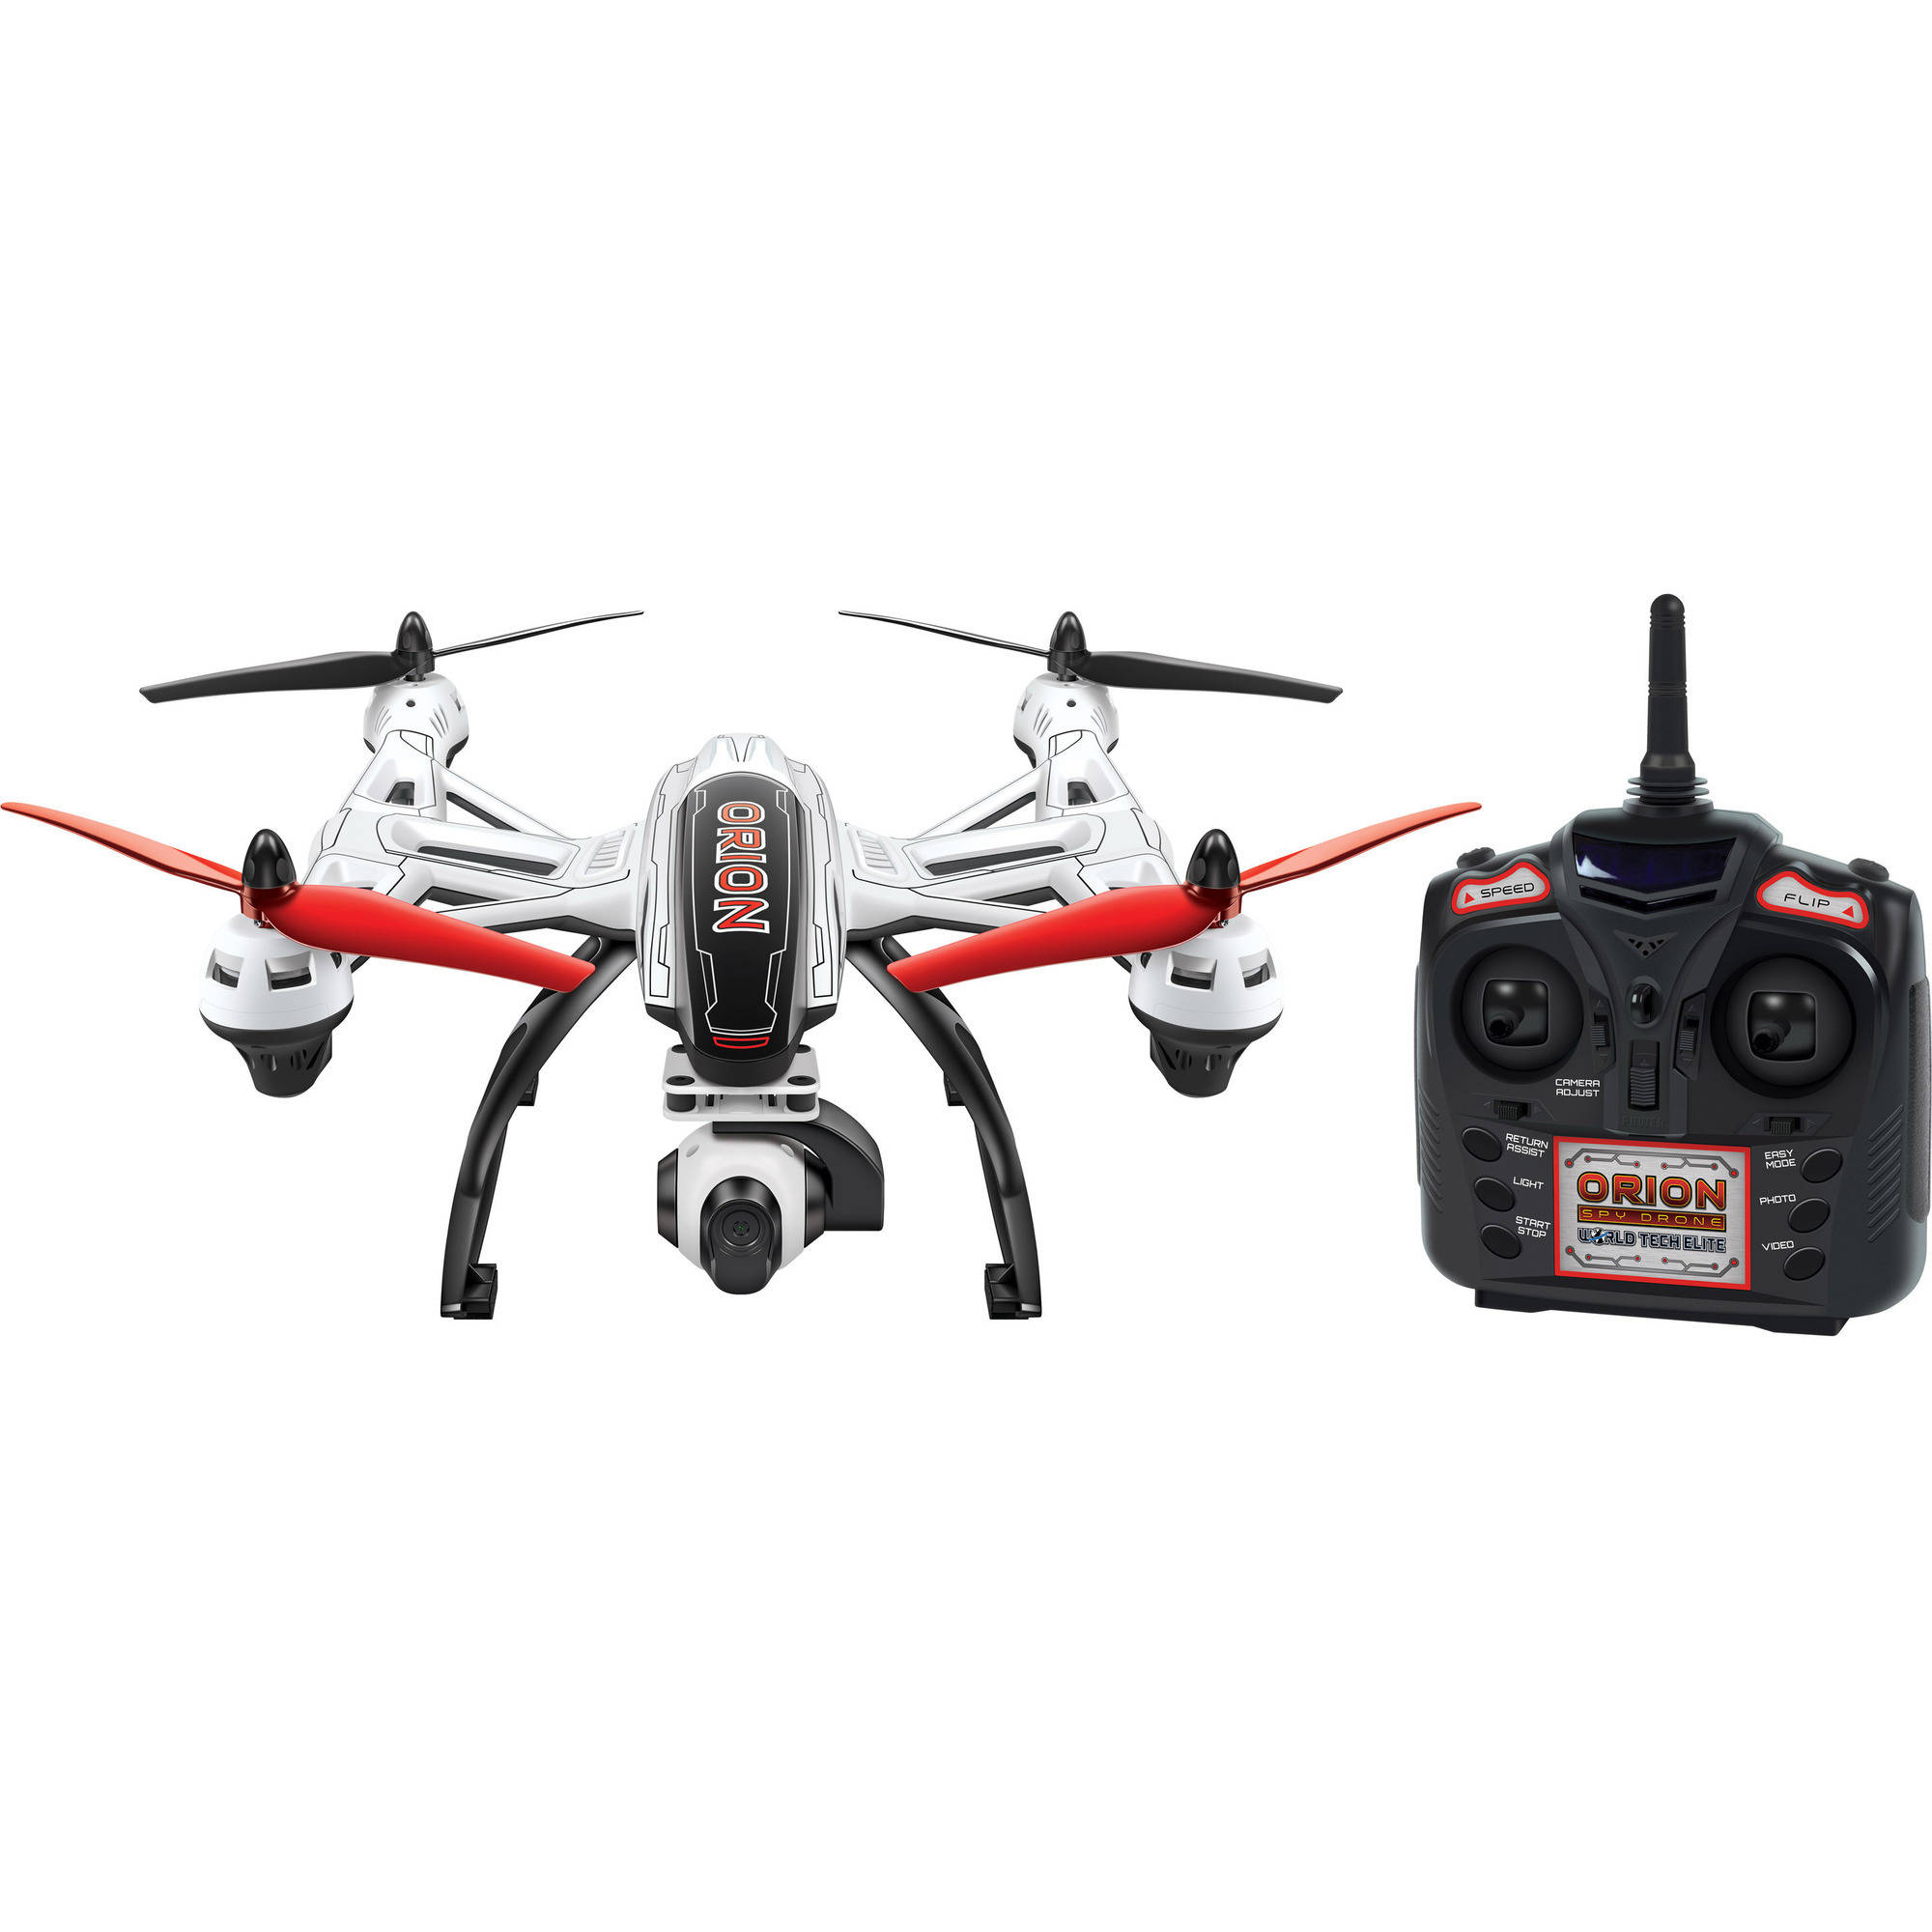 Elite Orion 1-Axis Gimbal 2.4GHz 4.5-Channel R/C HD Camera Drone